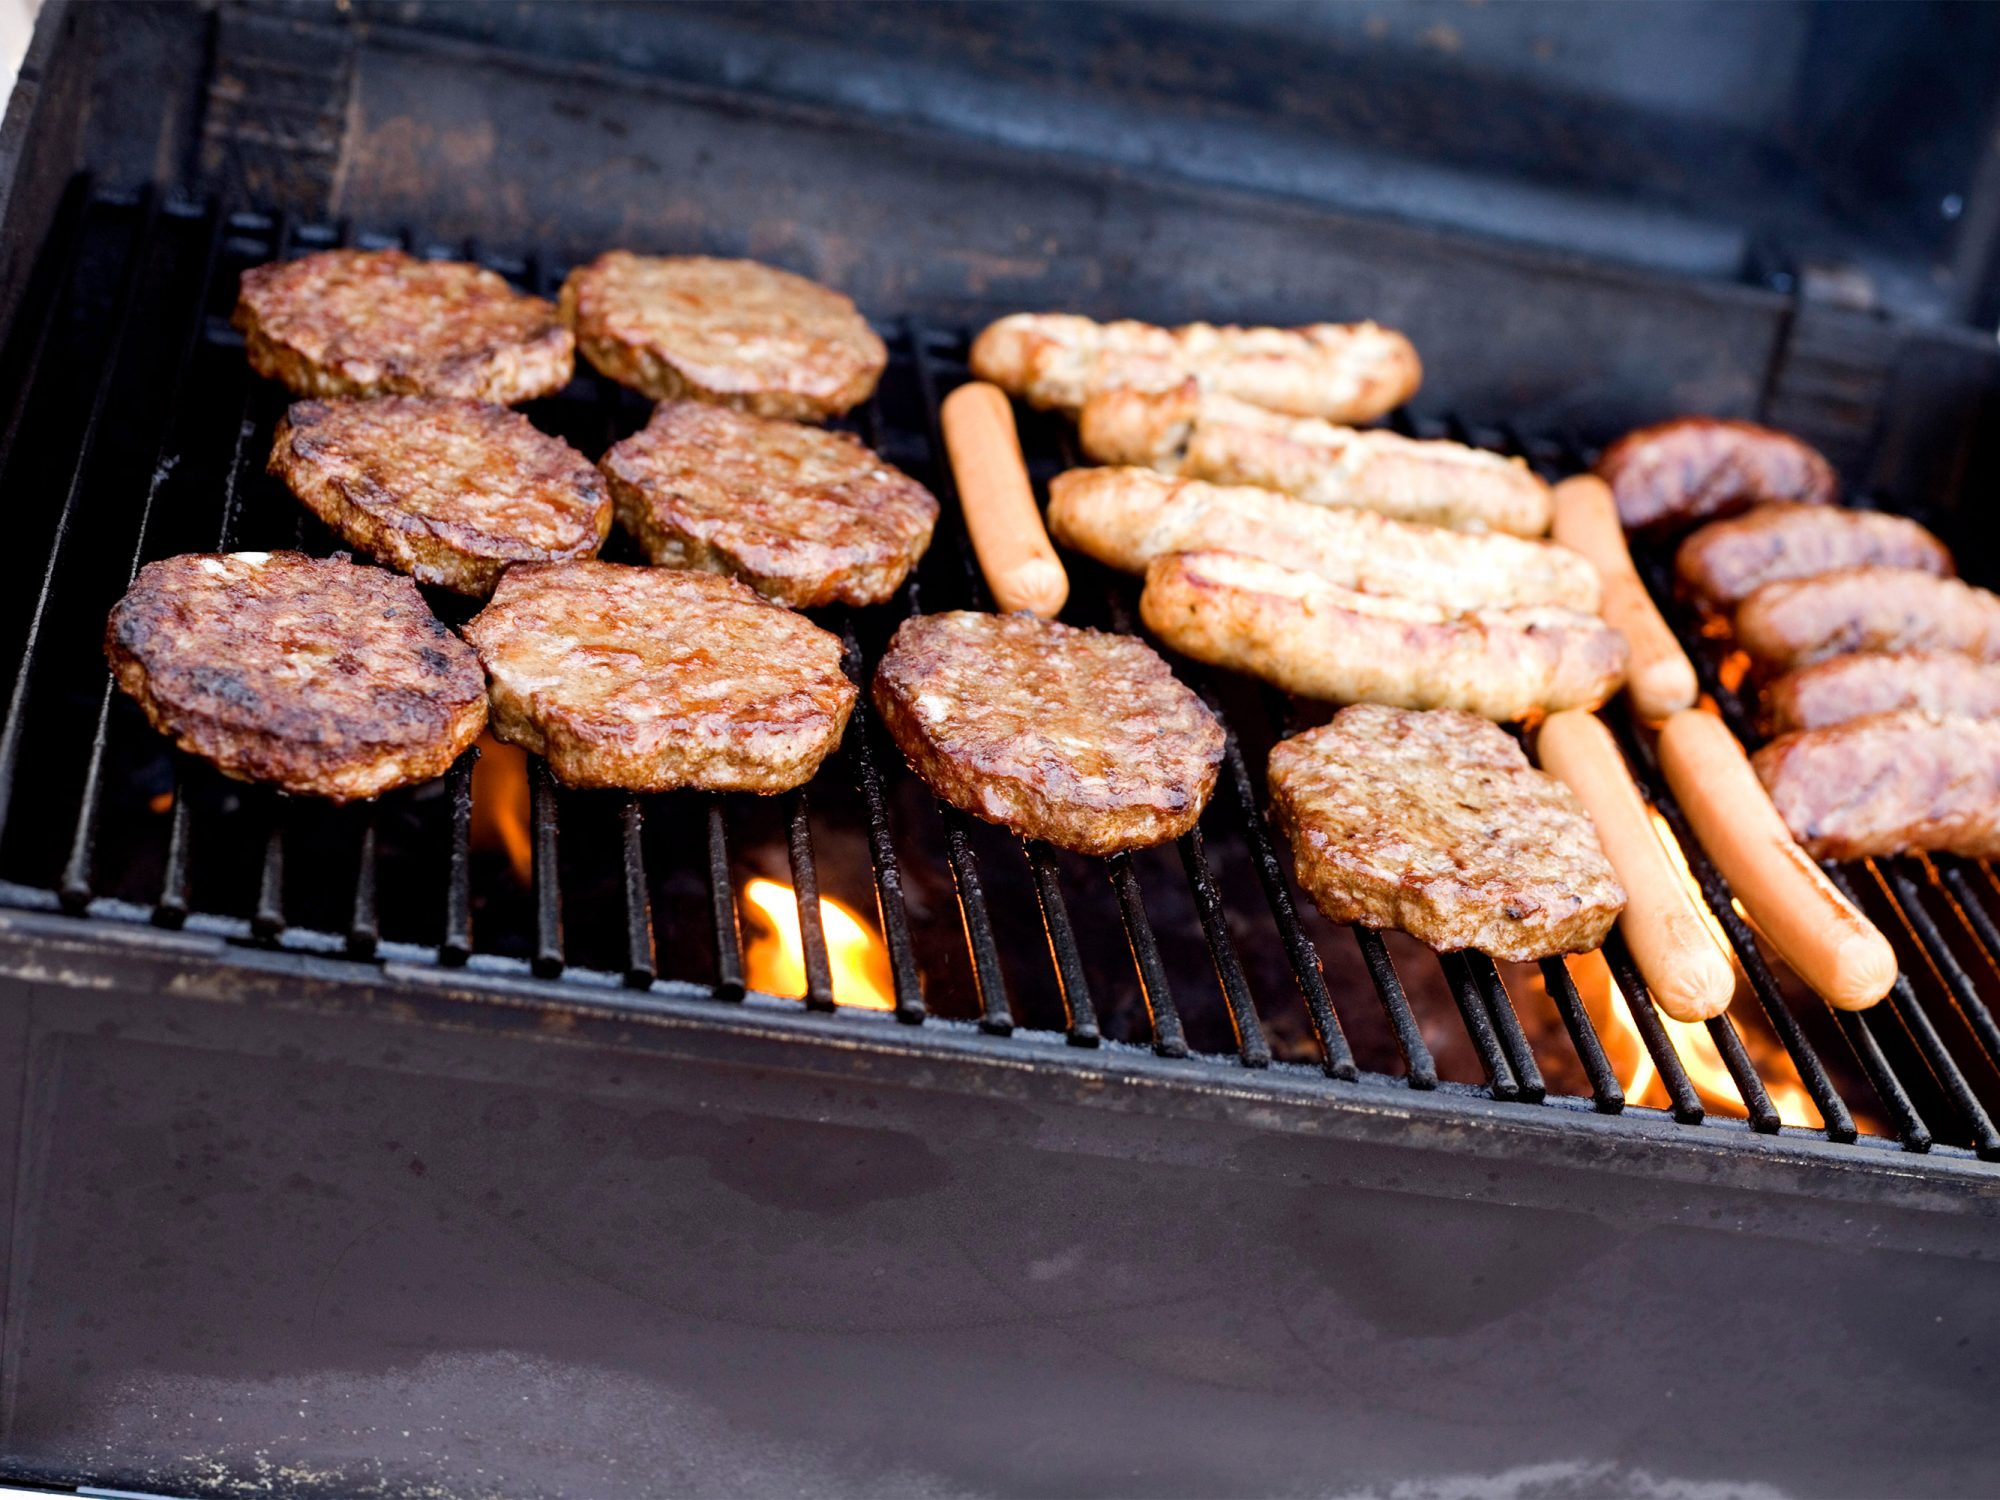 Hamburgers and hot dogs on a gas grill